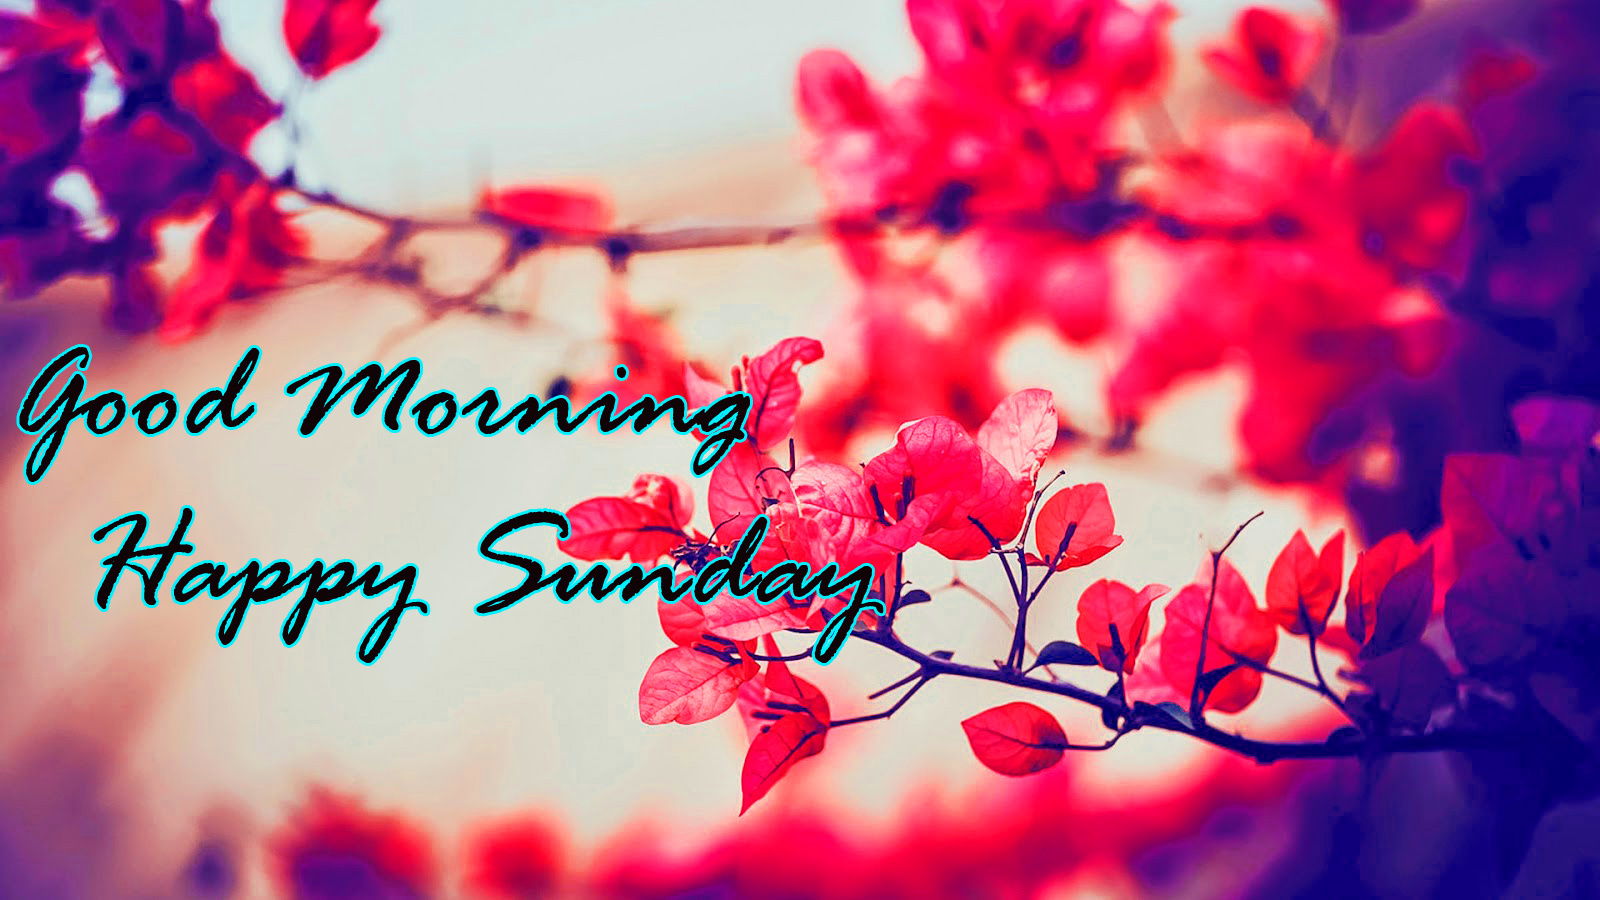 Sunday Good Morning Wallpaper Pics HD Download